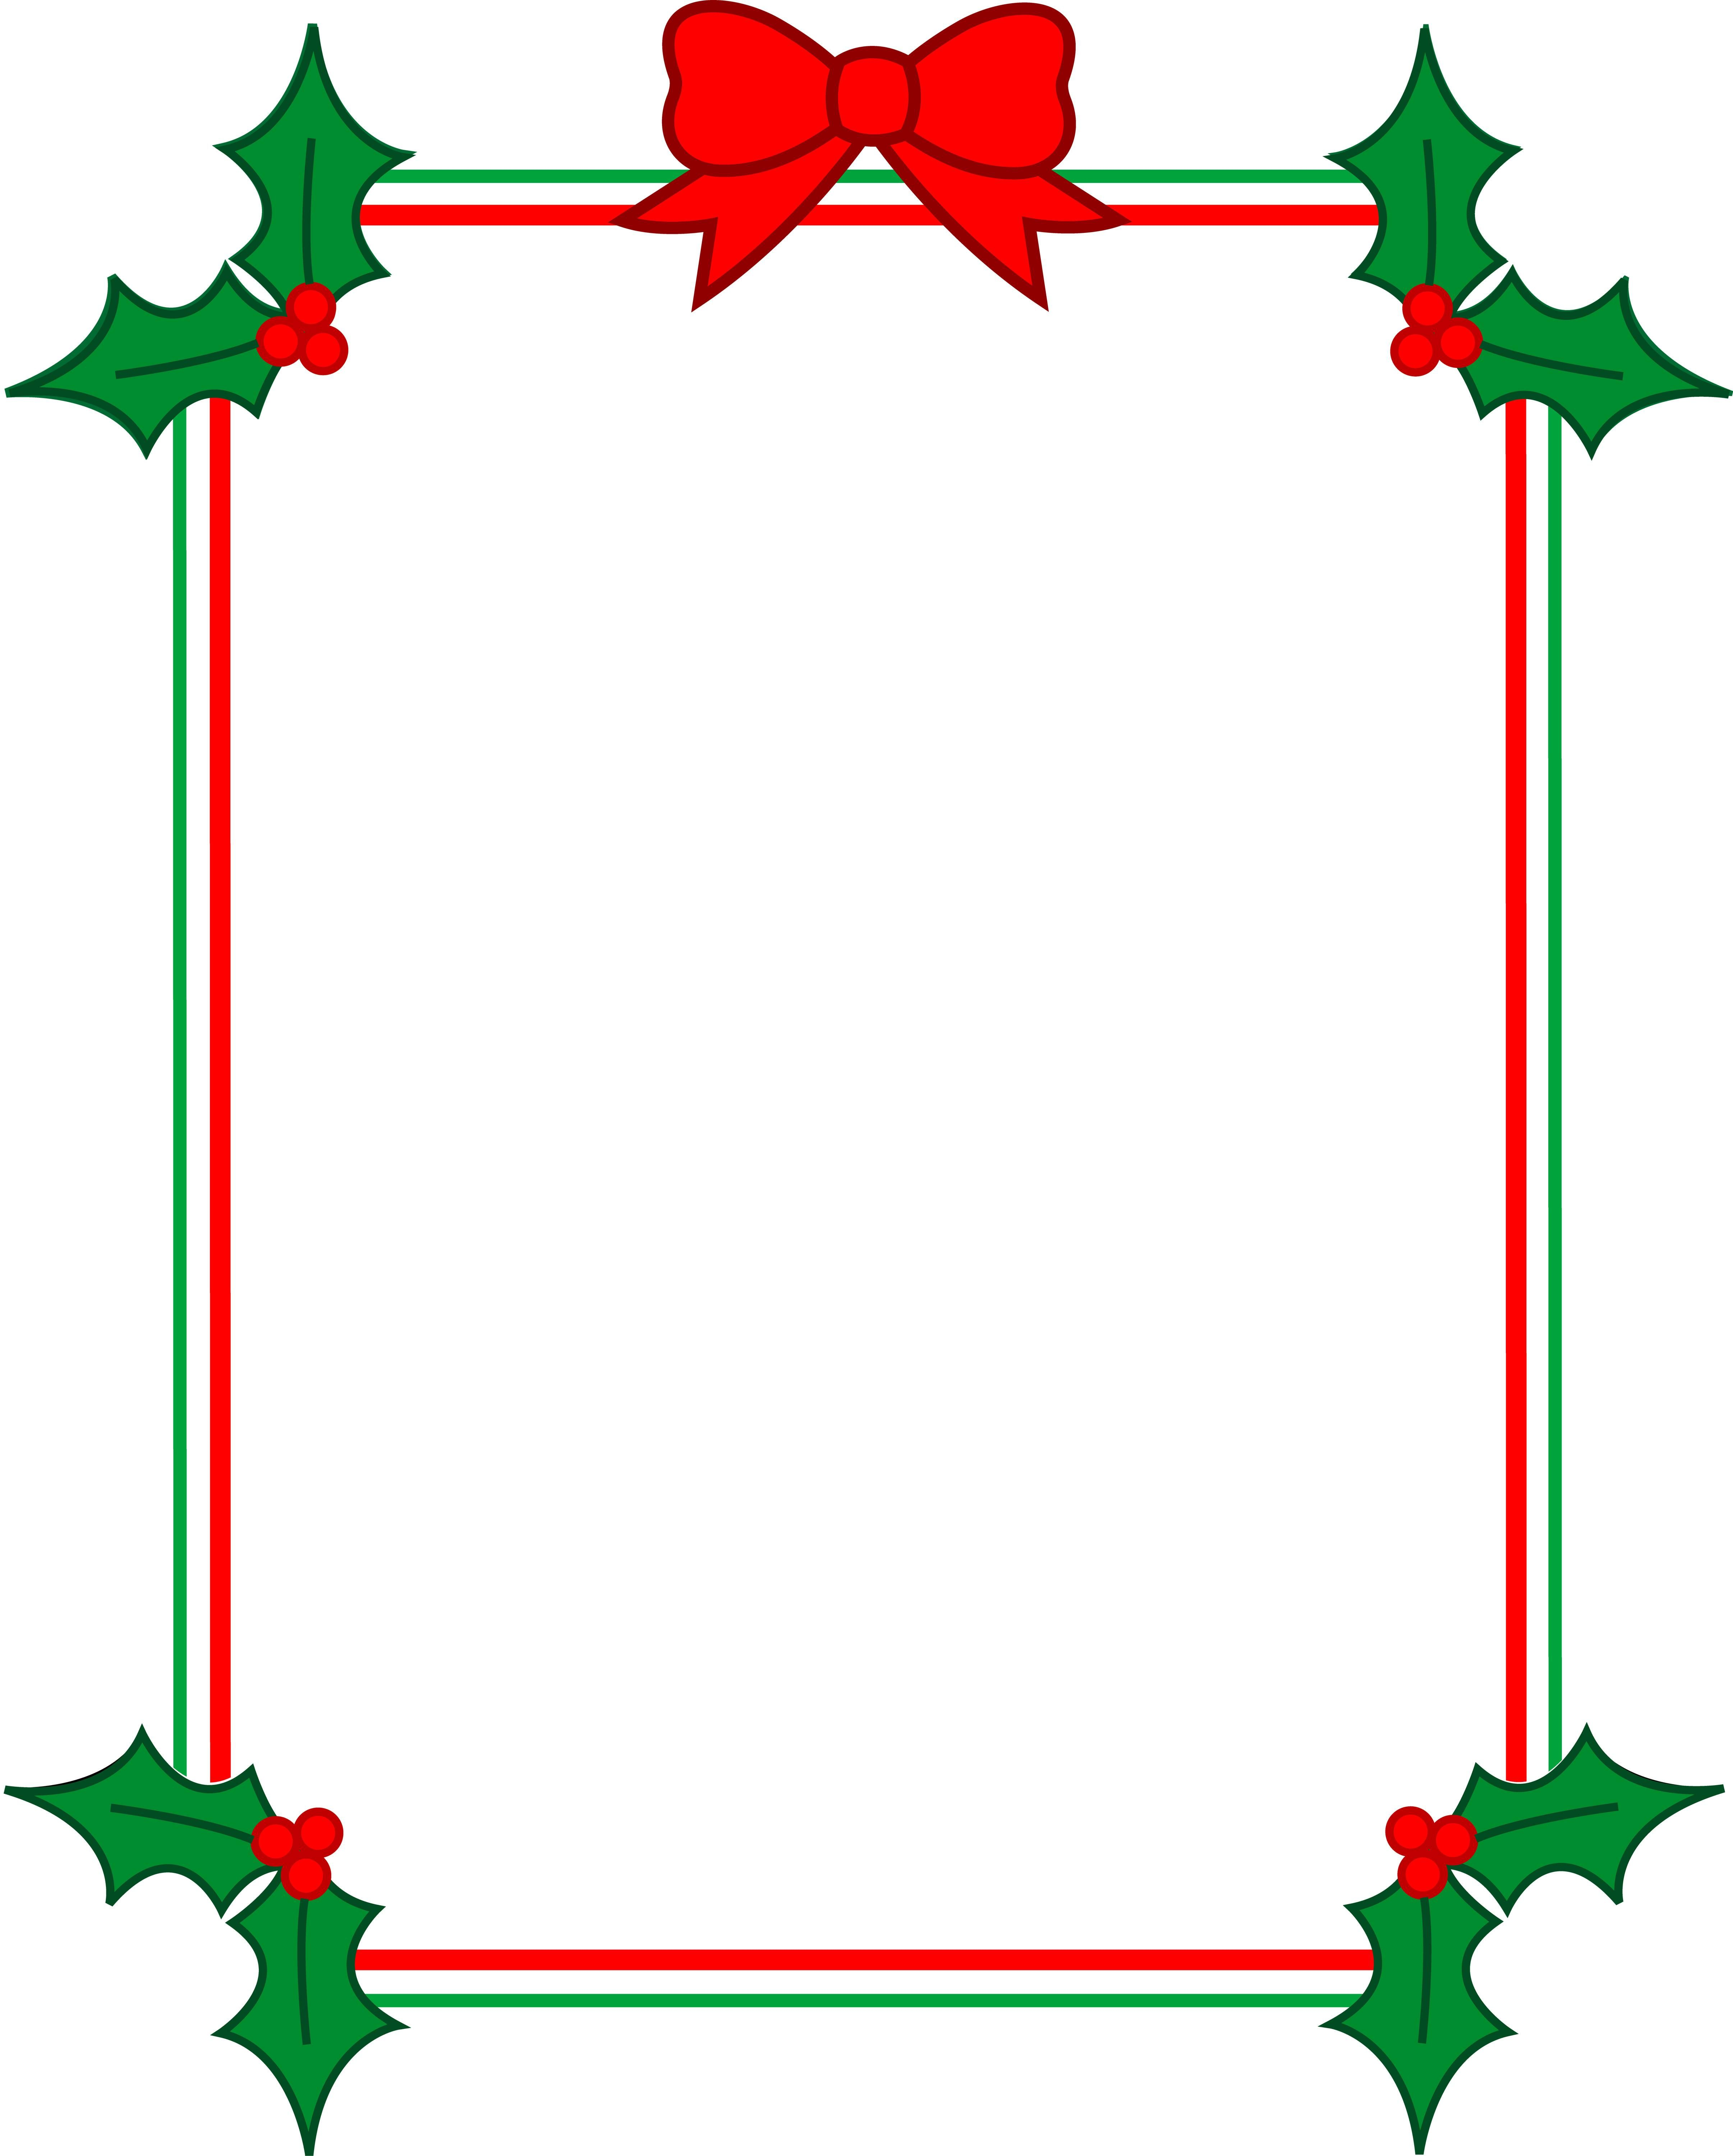 image freeuse download Christmas clipart page borders. For microsoft word library.